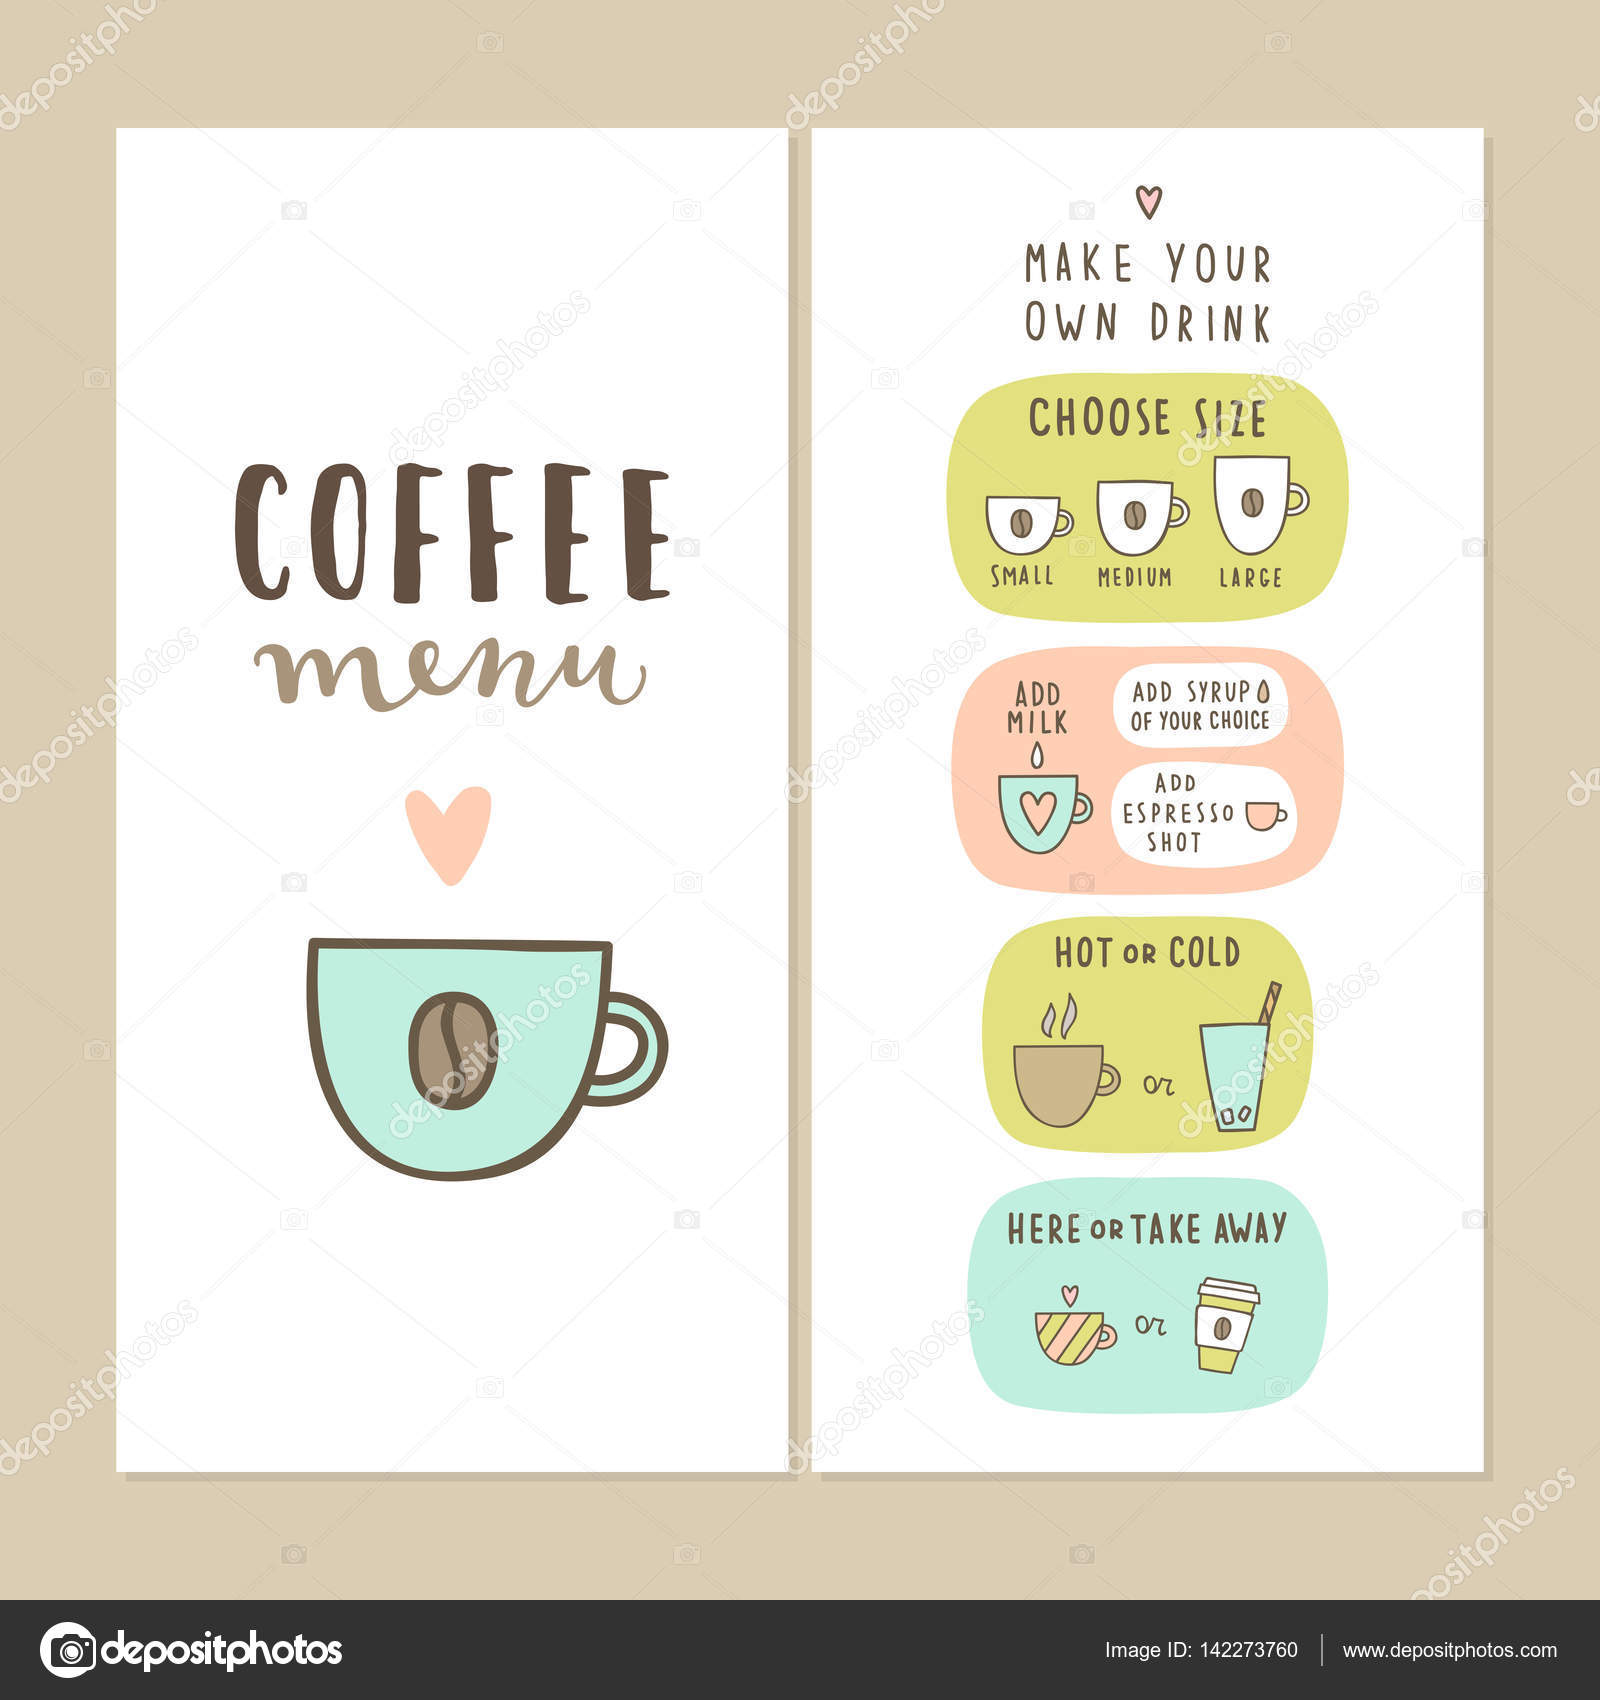 Coffee bar menu template stock vector kondratya 142273760 coffee bar menu template make your own drink can be used for your cafe design vector by kondratya maxwellsz